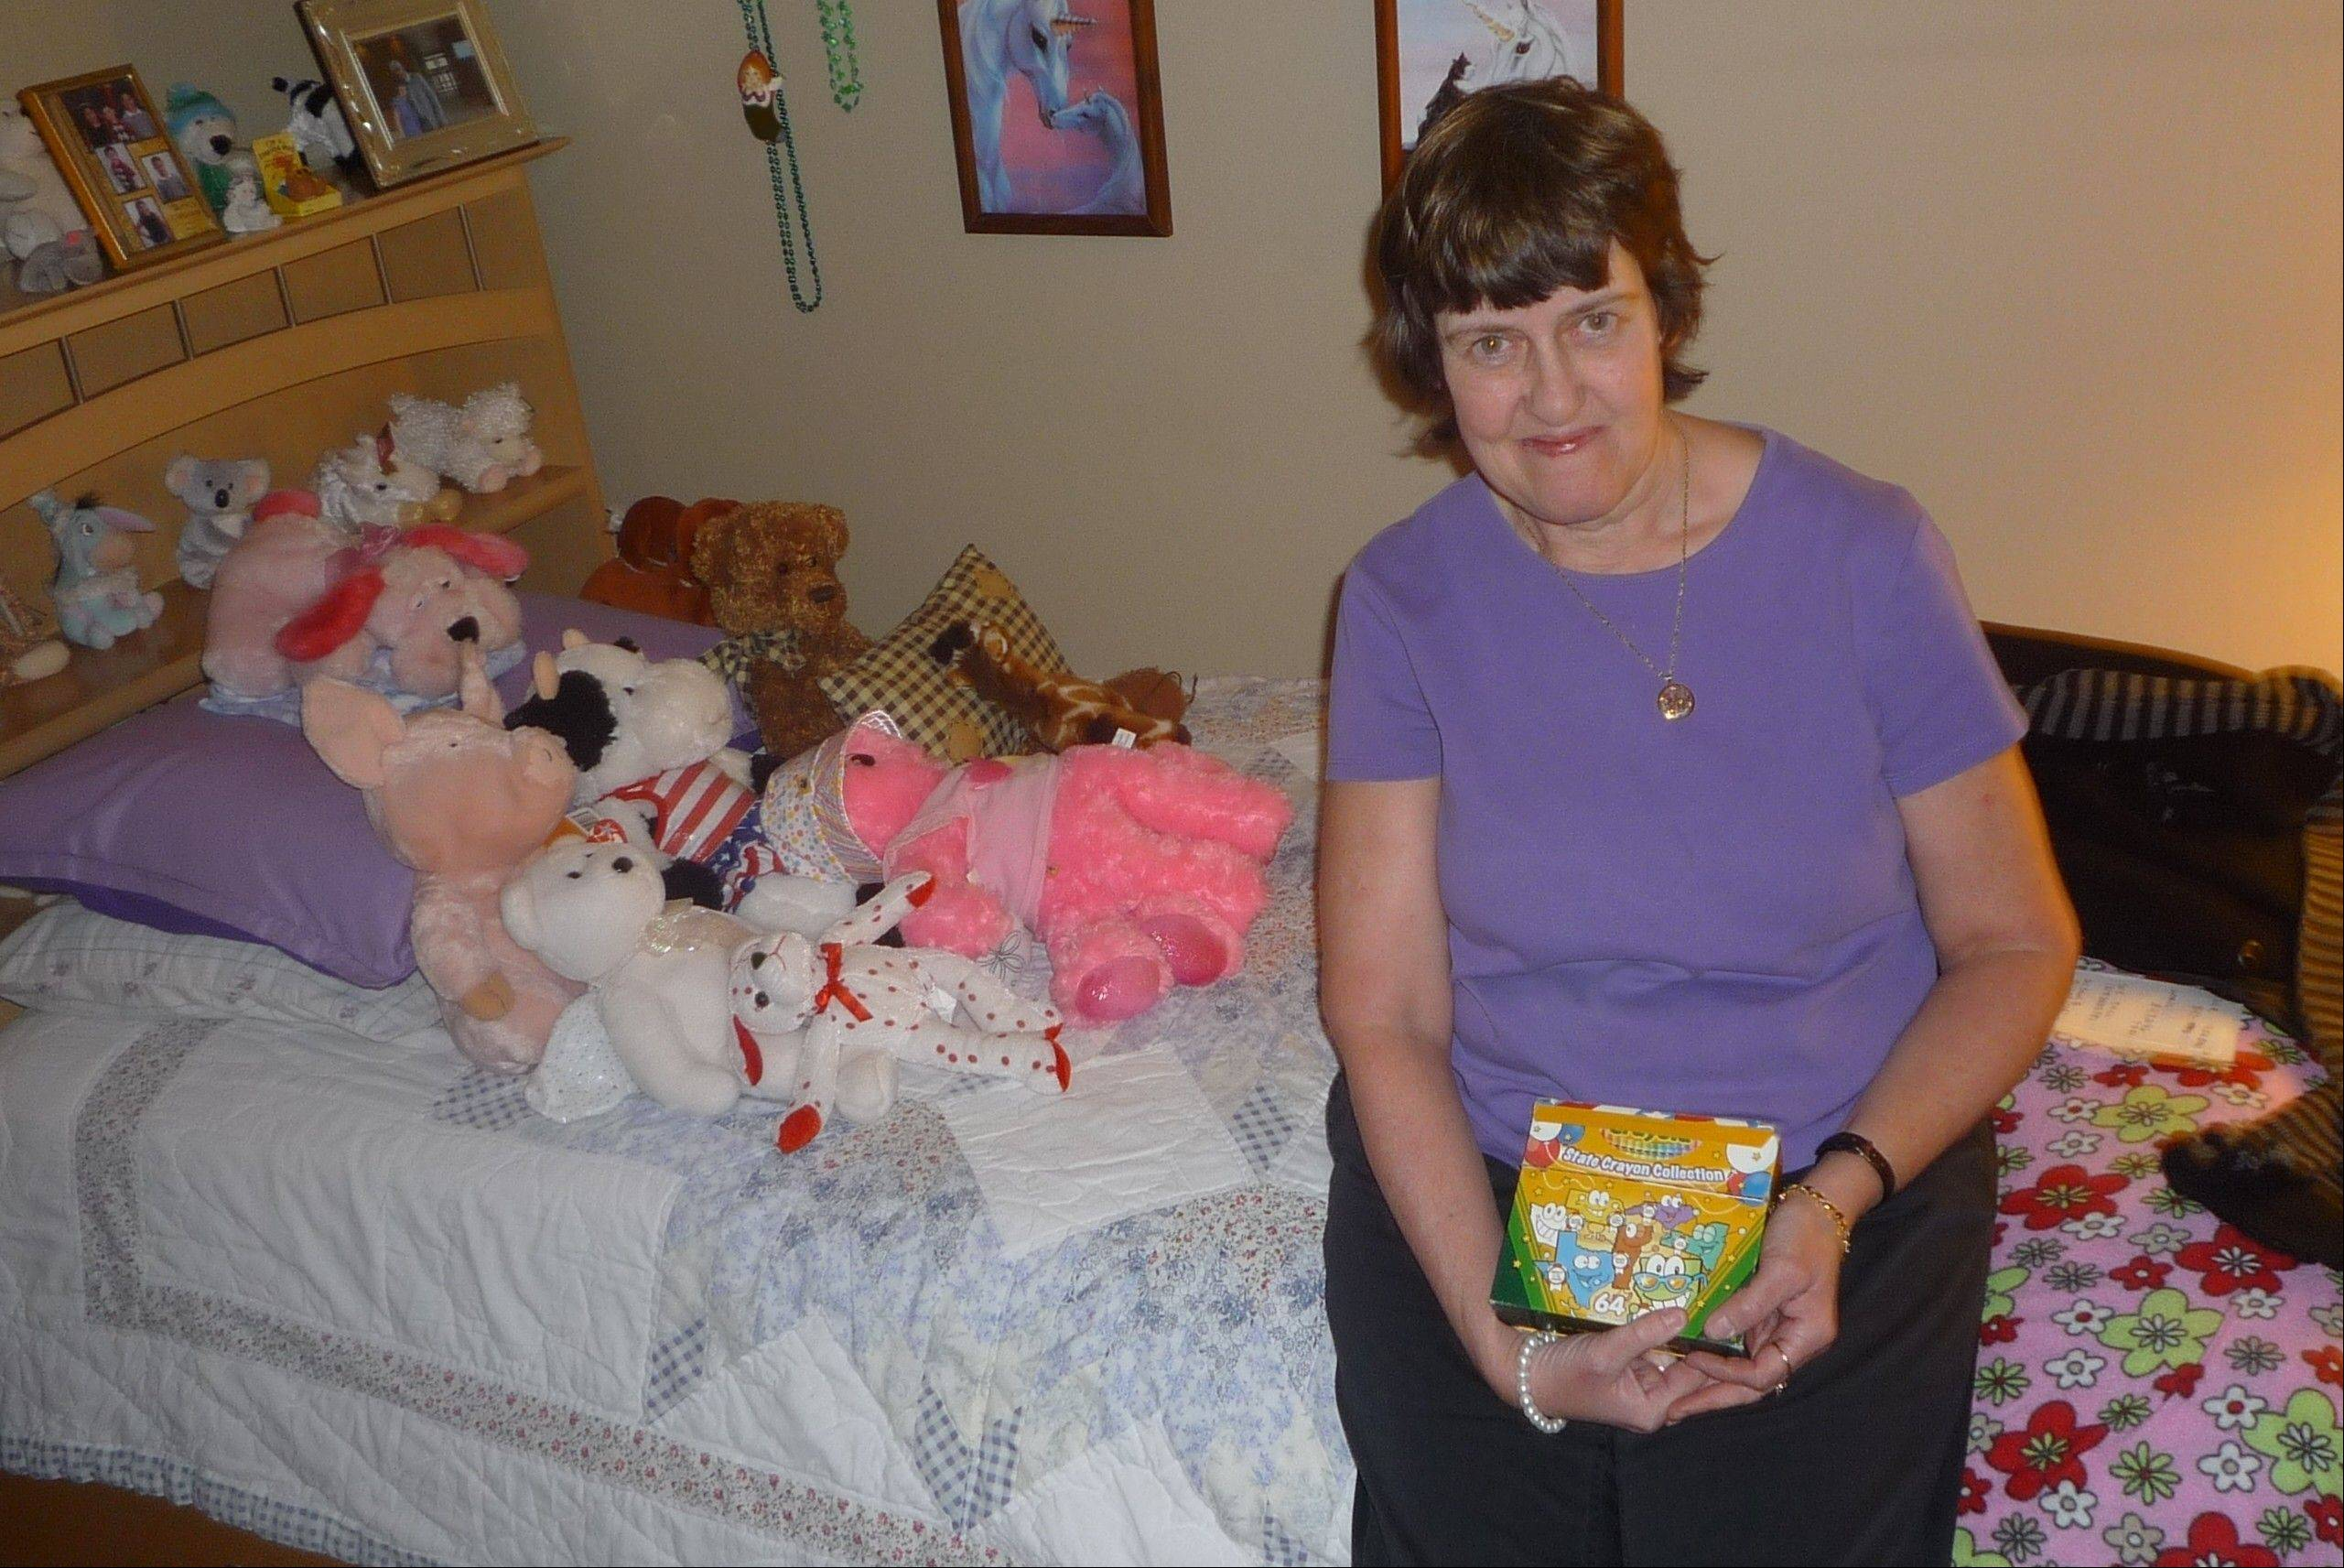 Showing off a box of crayons in her bedroom she decorates with stuffed animals and unicorn drawings, Cindy Moore lives as independently as she can with her developmental disability.